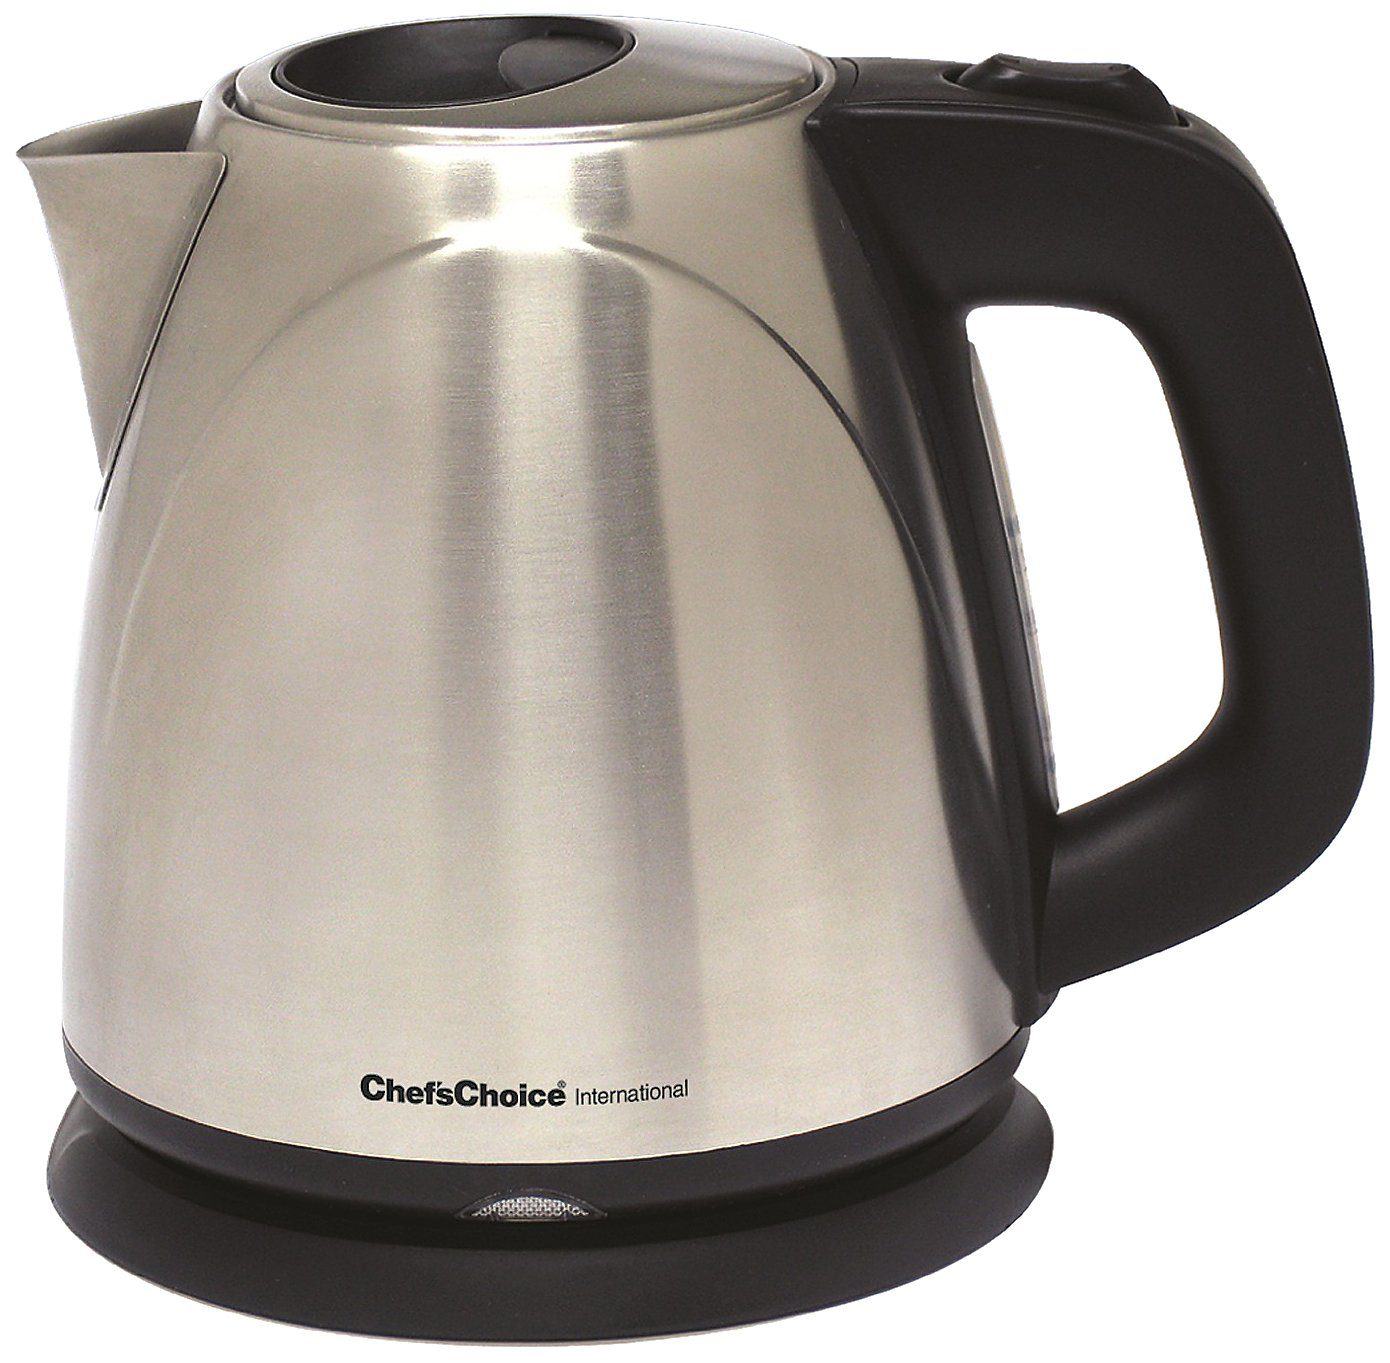 Chef sChoice 673 Cordless Compact Electric Kettle in Brushed Stainless Steel Features Boil Dry Protection and Auto Shut Off Easy Pour, 1-Liter, Silver